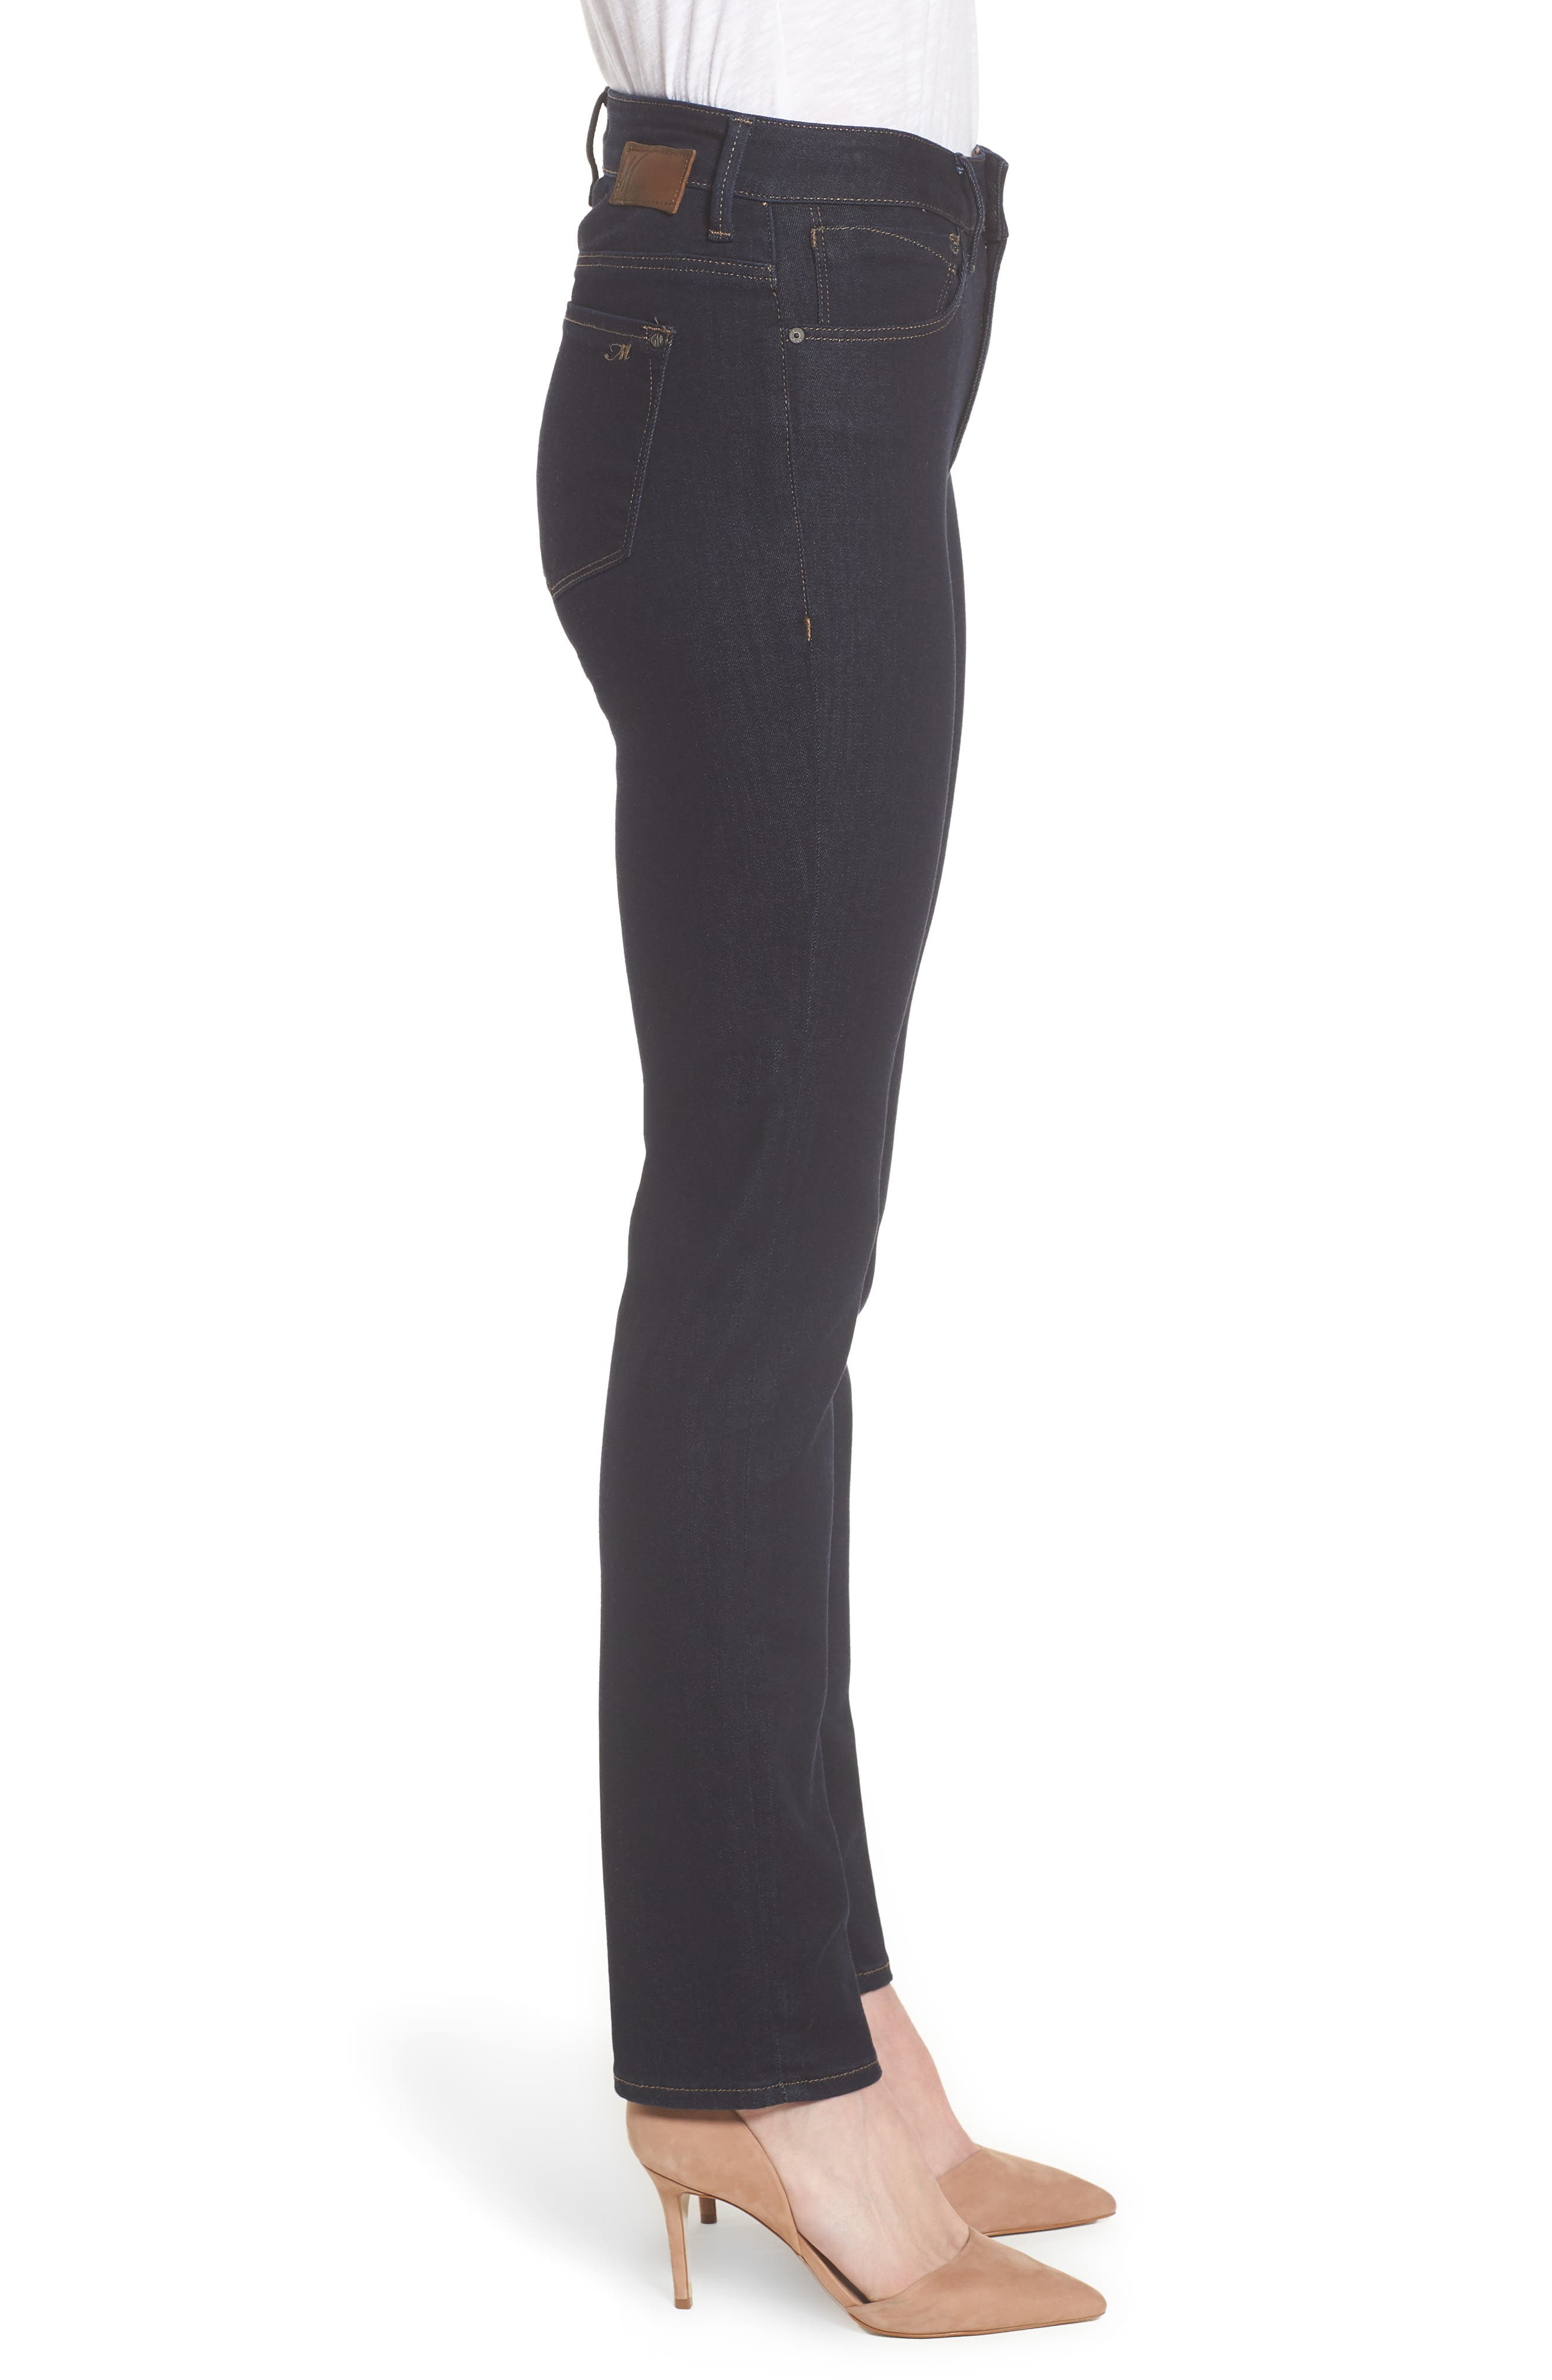 Kendra Supersoft Straight Leg Jeans,                             Alternate thumbnail 3, color,                             Rinse Super Soft